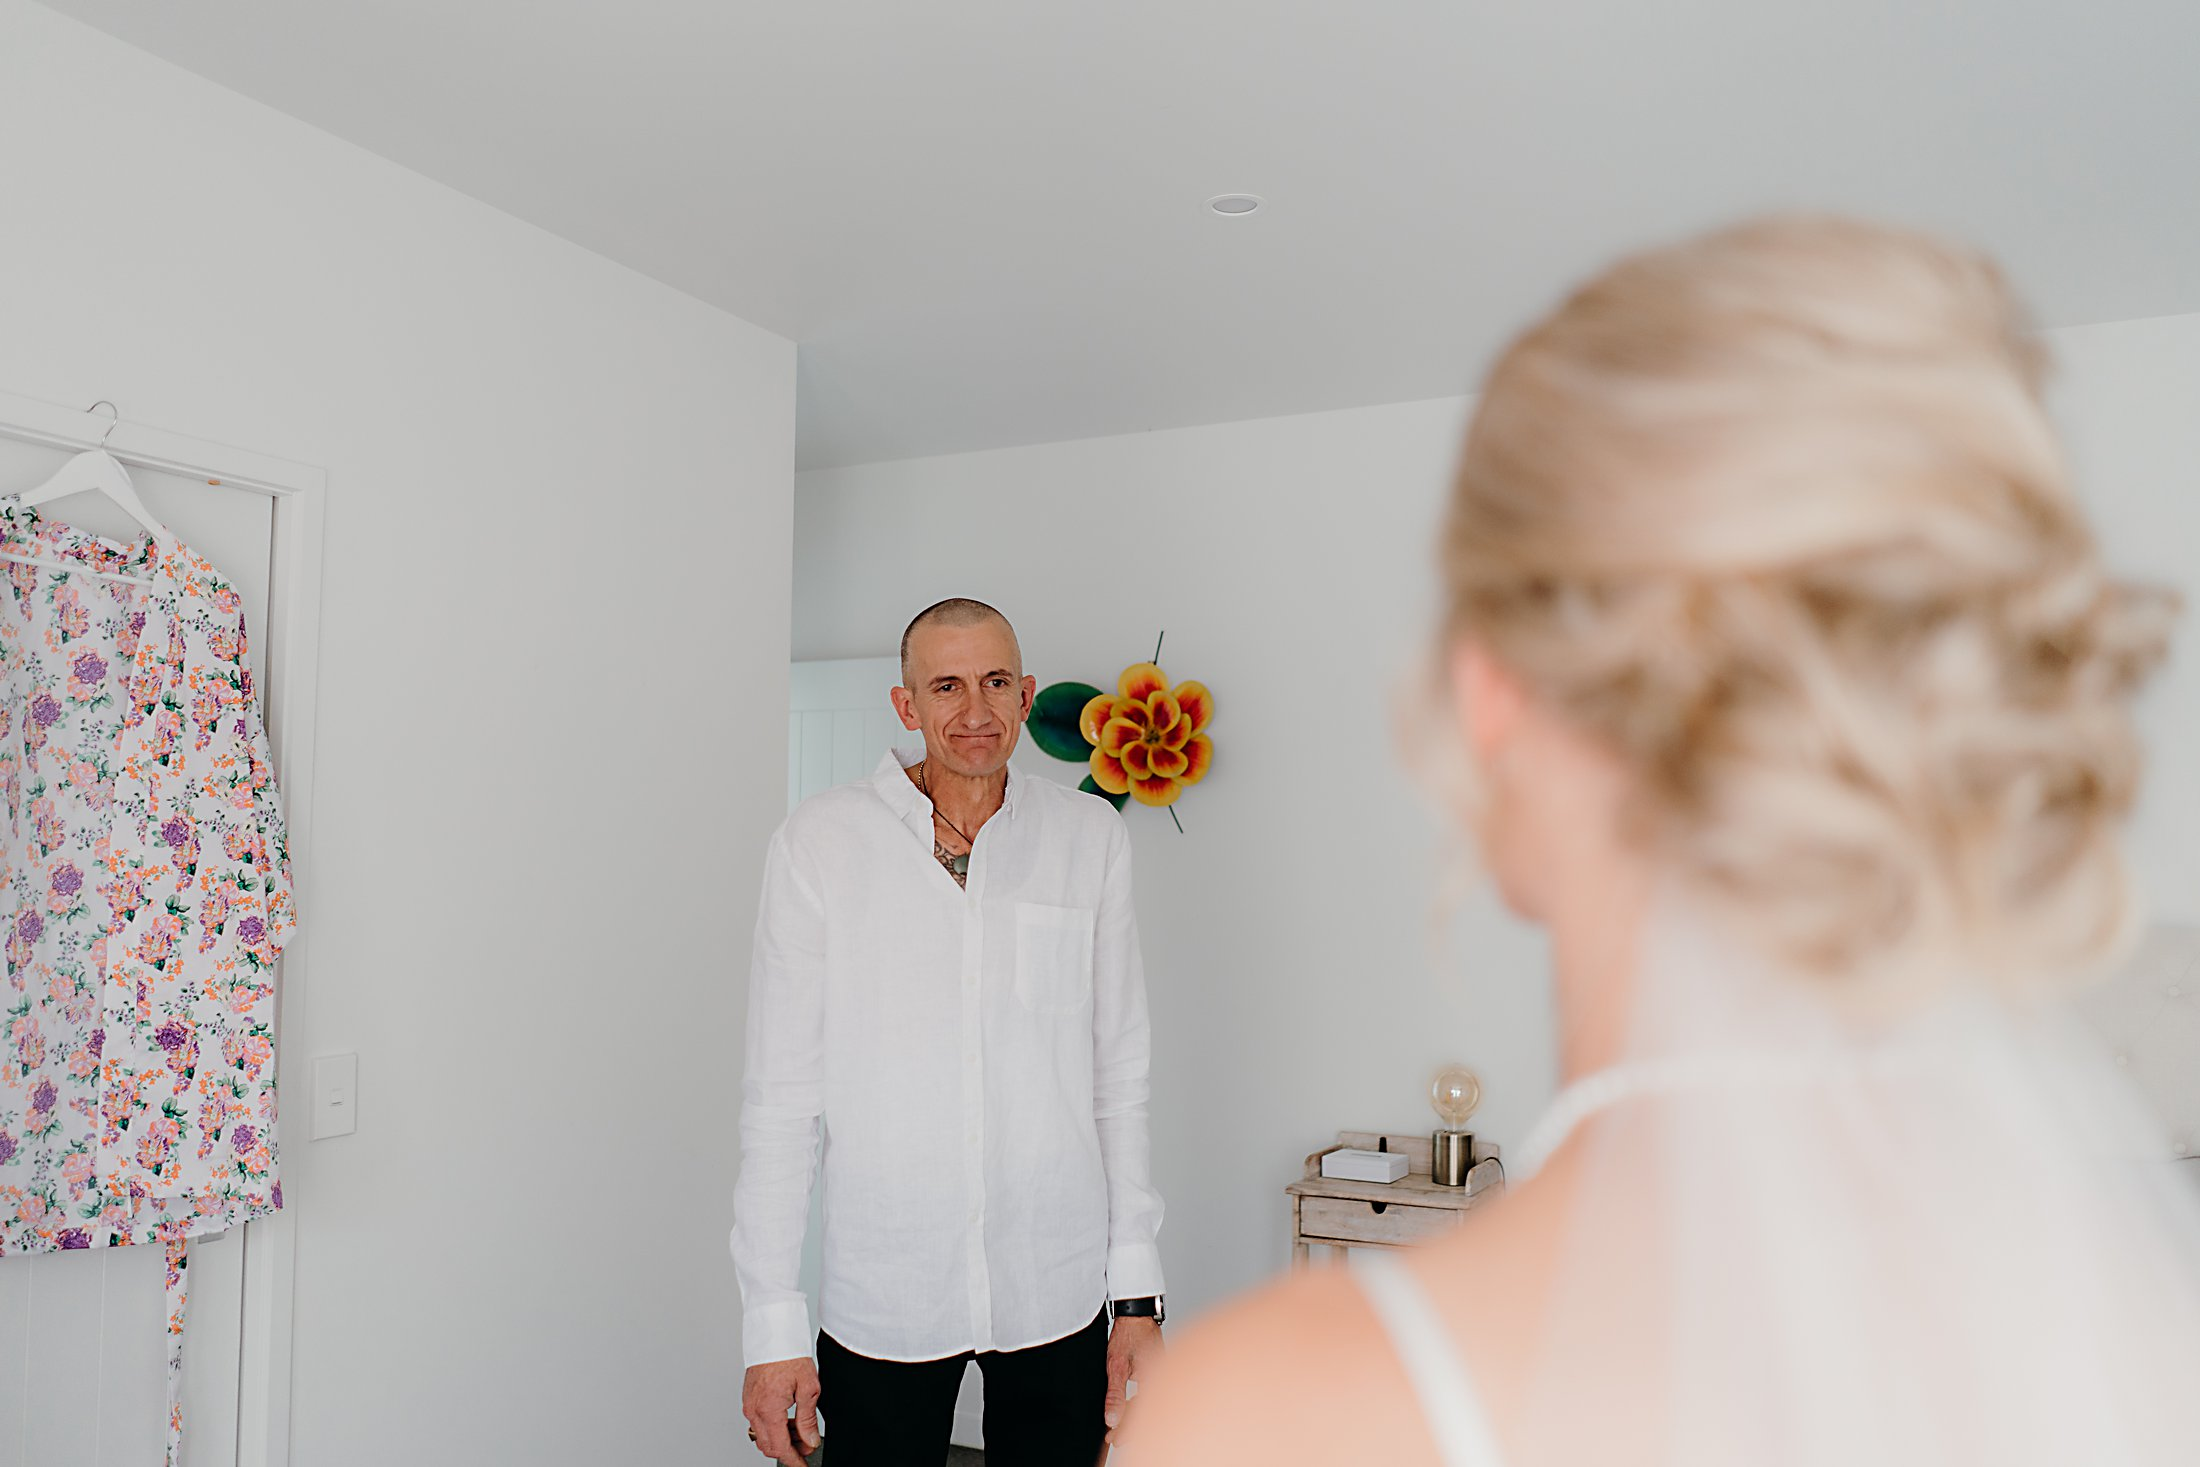 bride's dads reaction